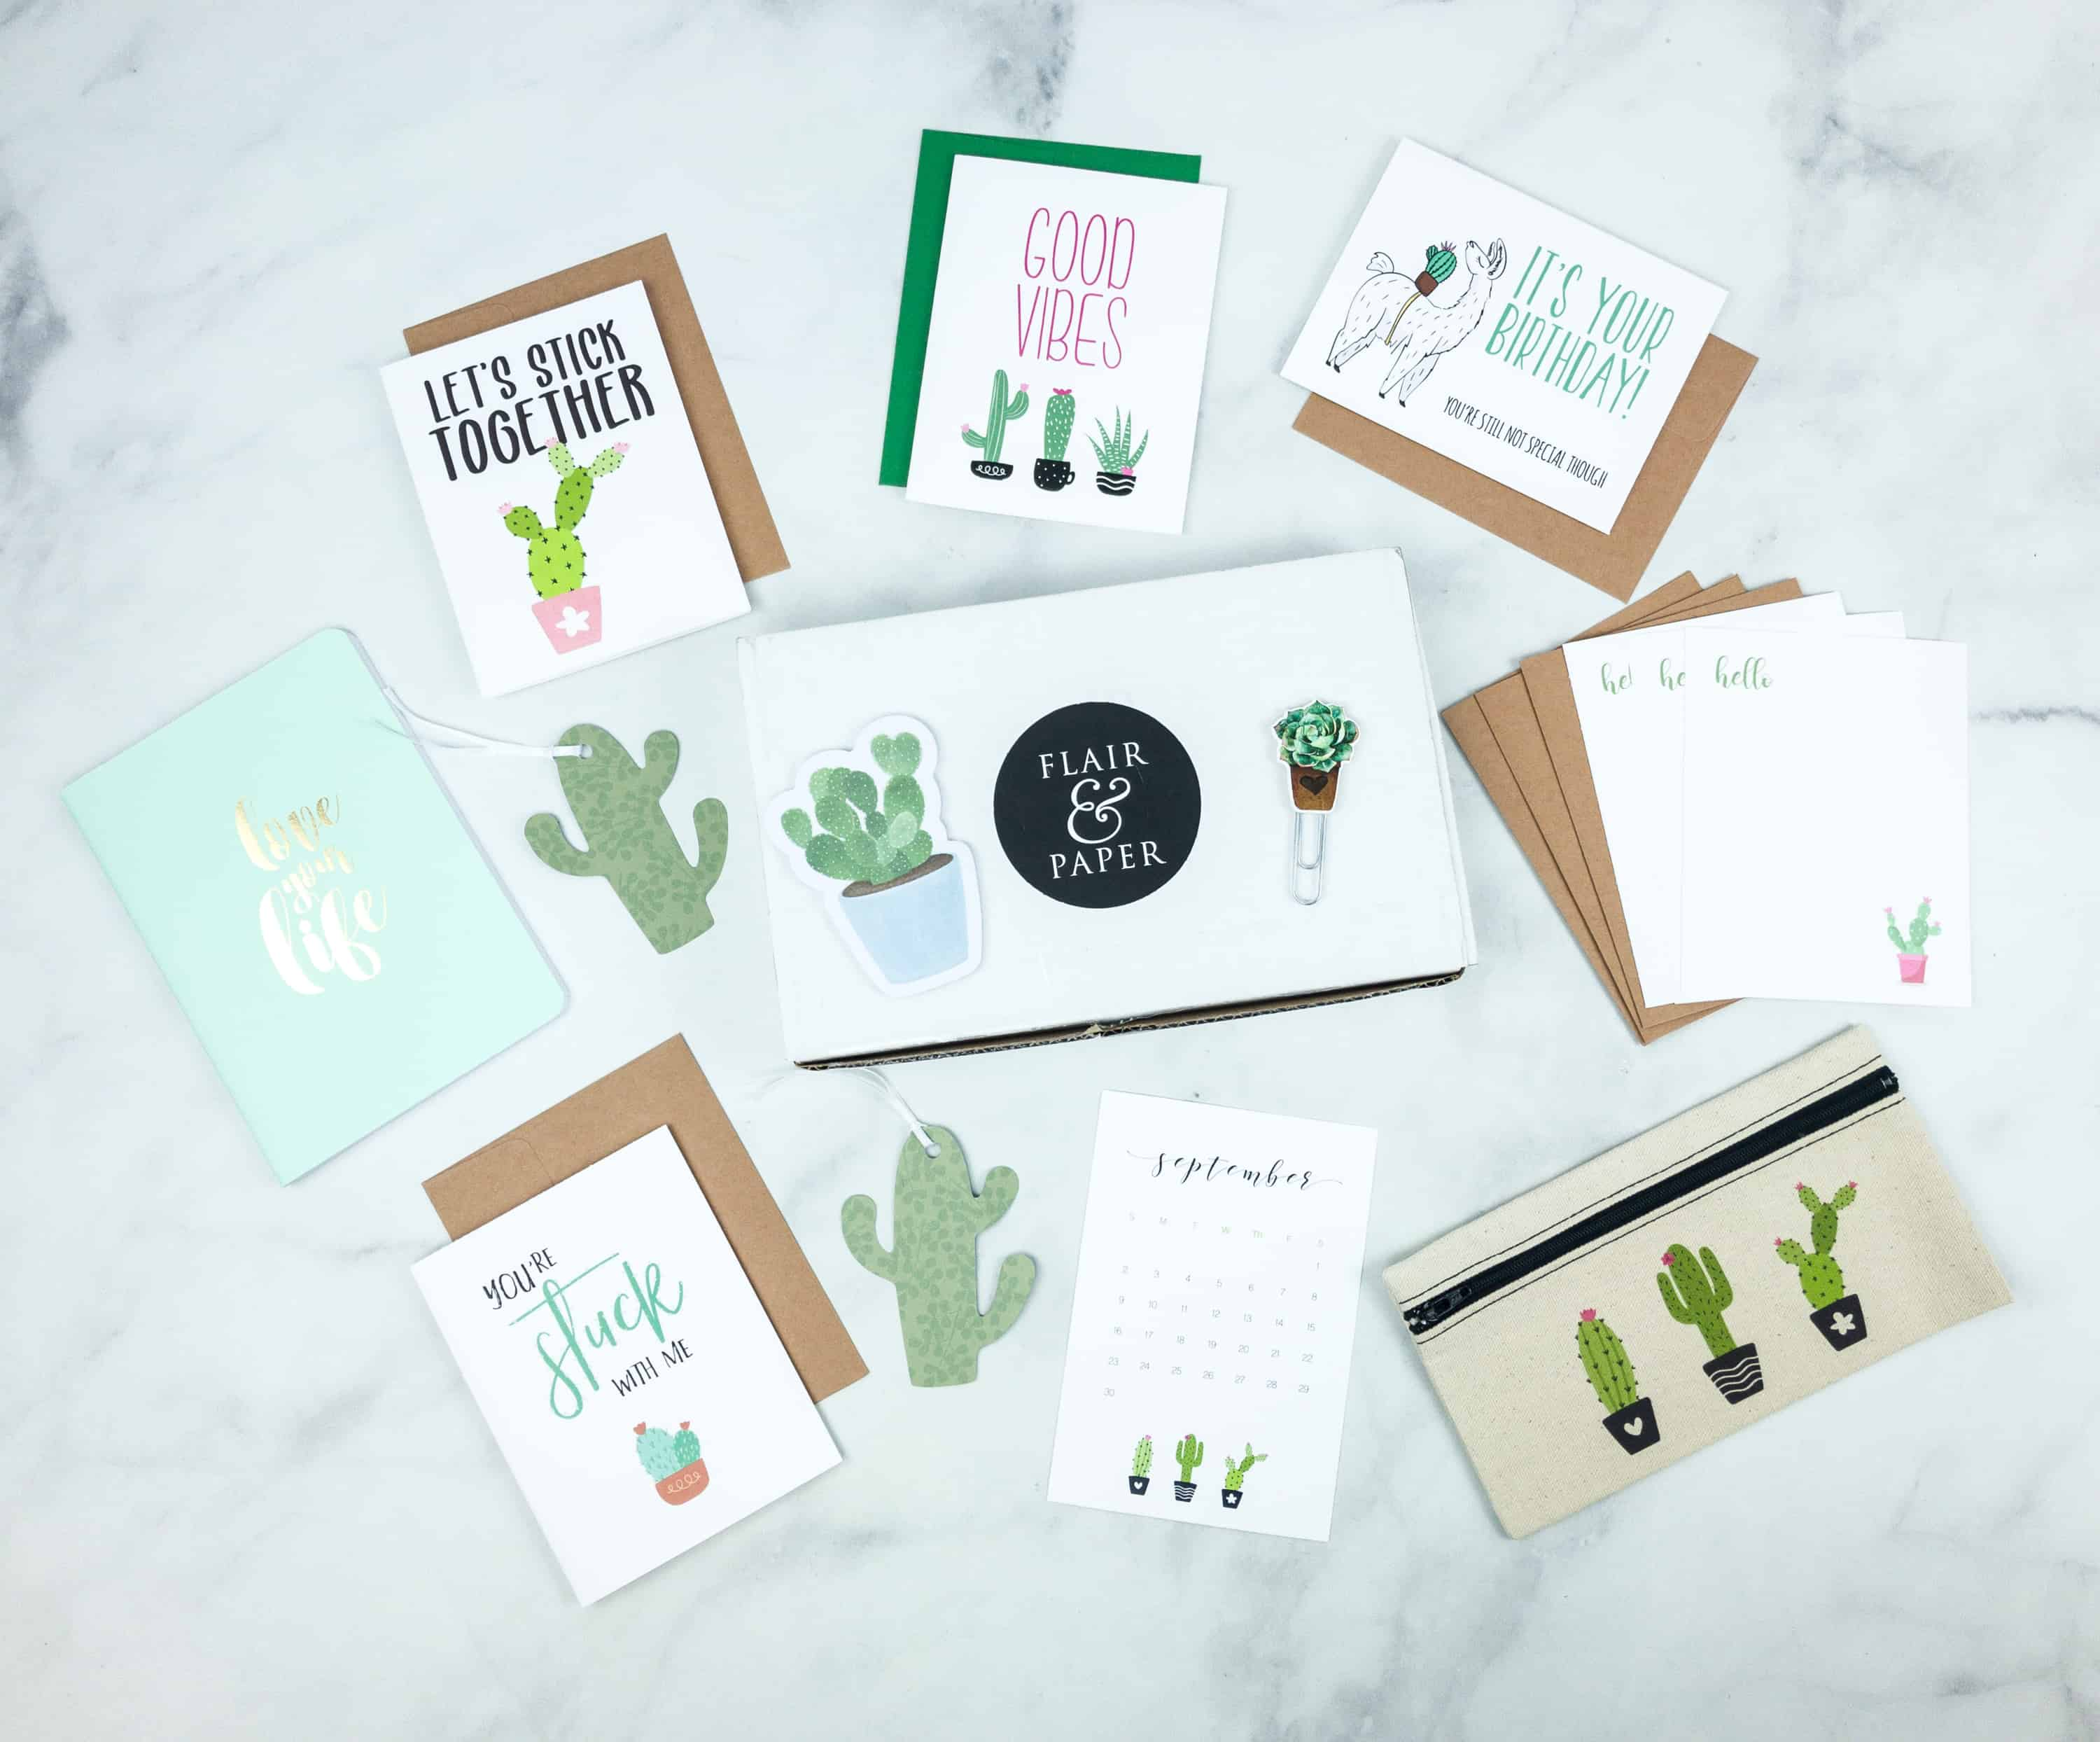 Flair and Paper July 2018 Subscription Box Review & Coupon